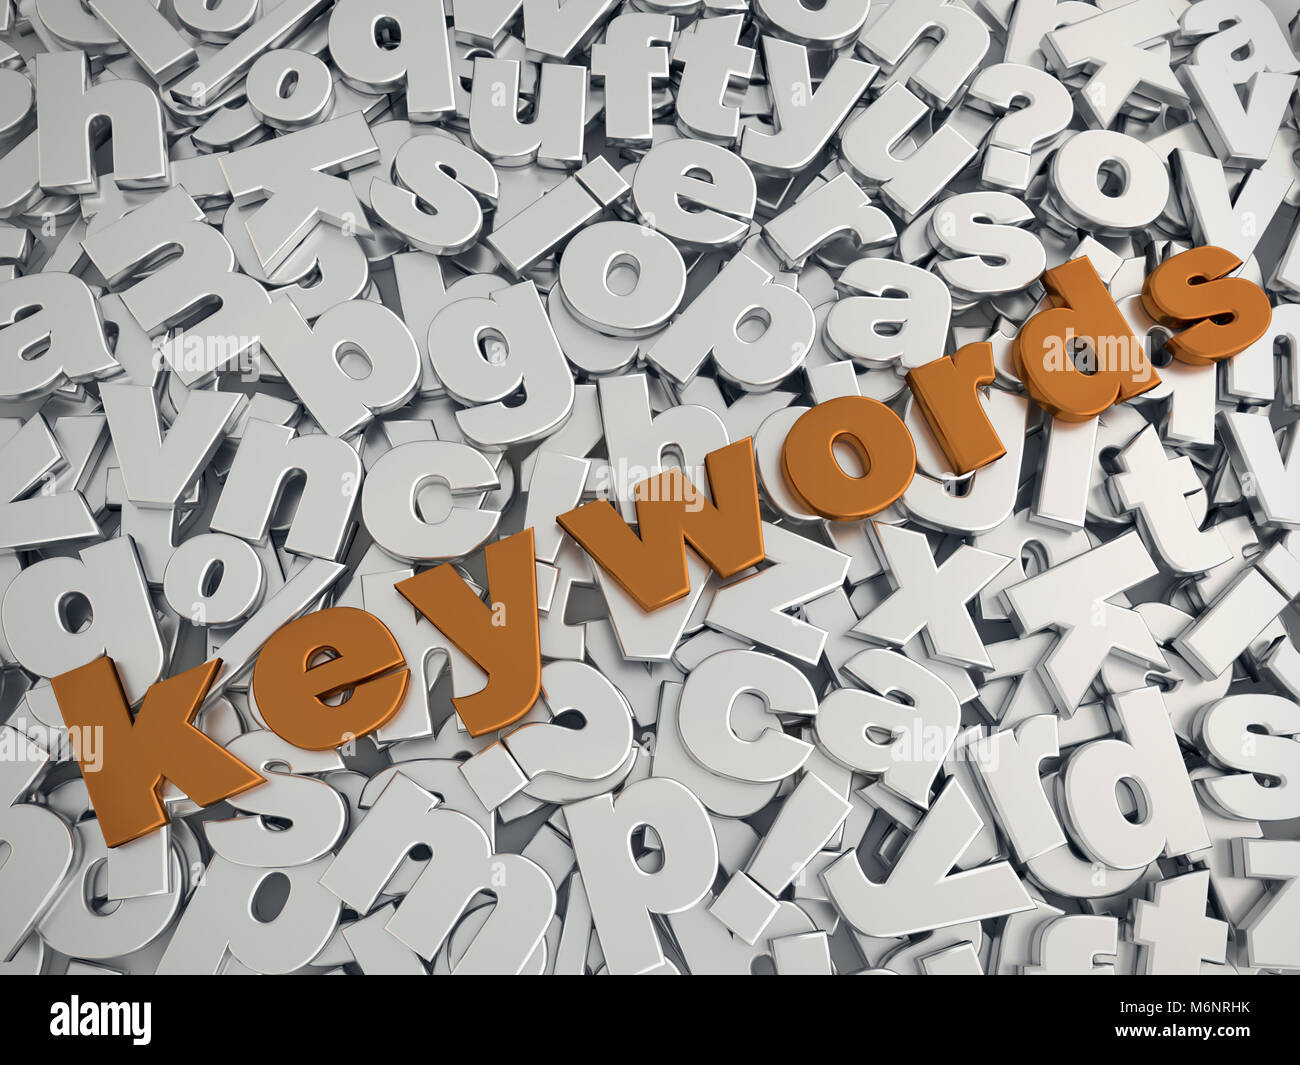 Word In 3d Letters On Stockfotos & Word In 3d Letters On Bilder - Alamy